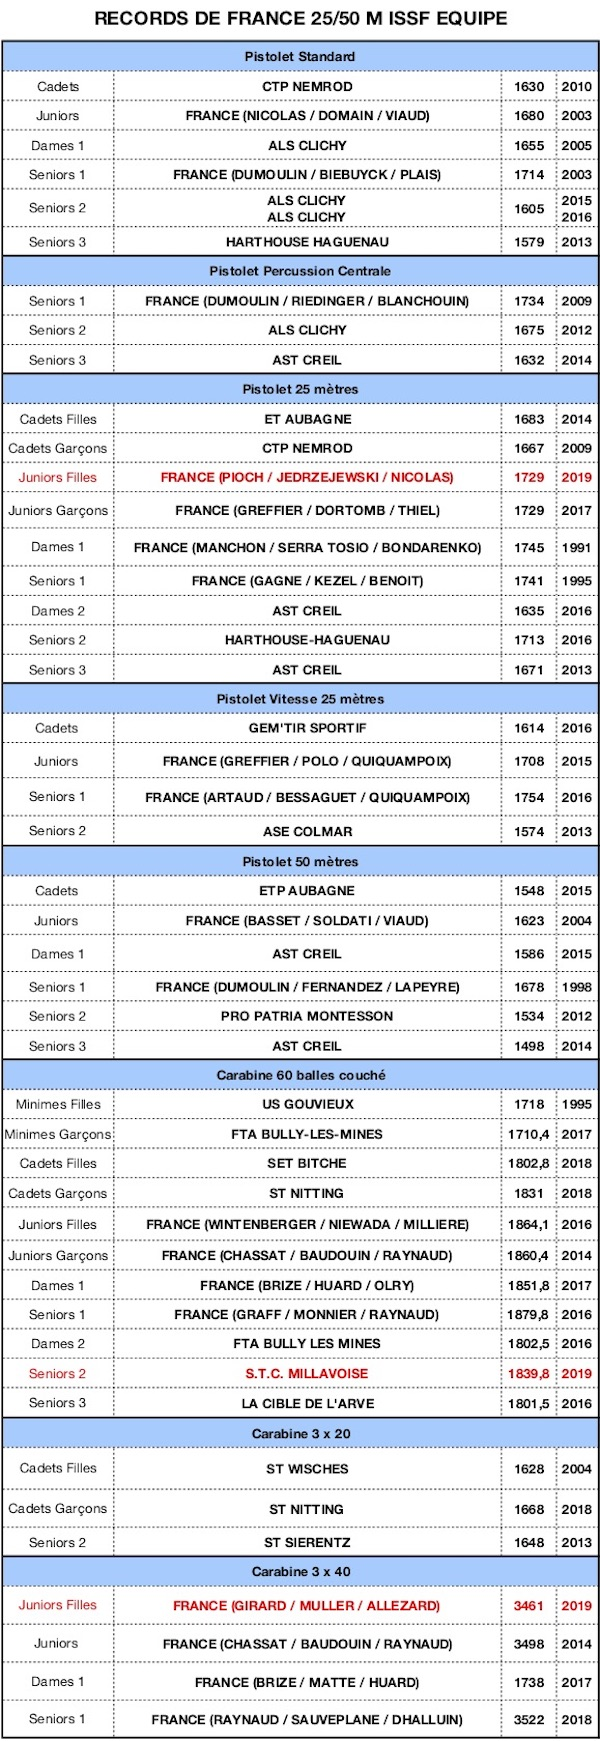 RECORD DE FRANCE 2019-25 50 Equipes 16092019-1445 - copie.jpg